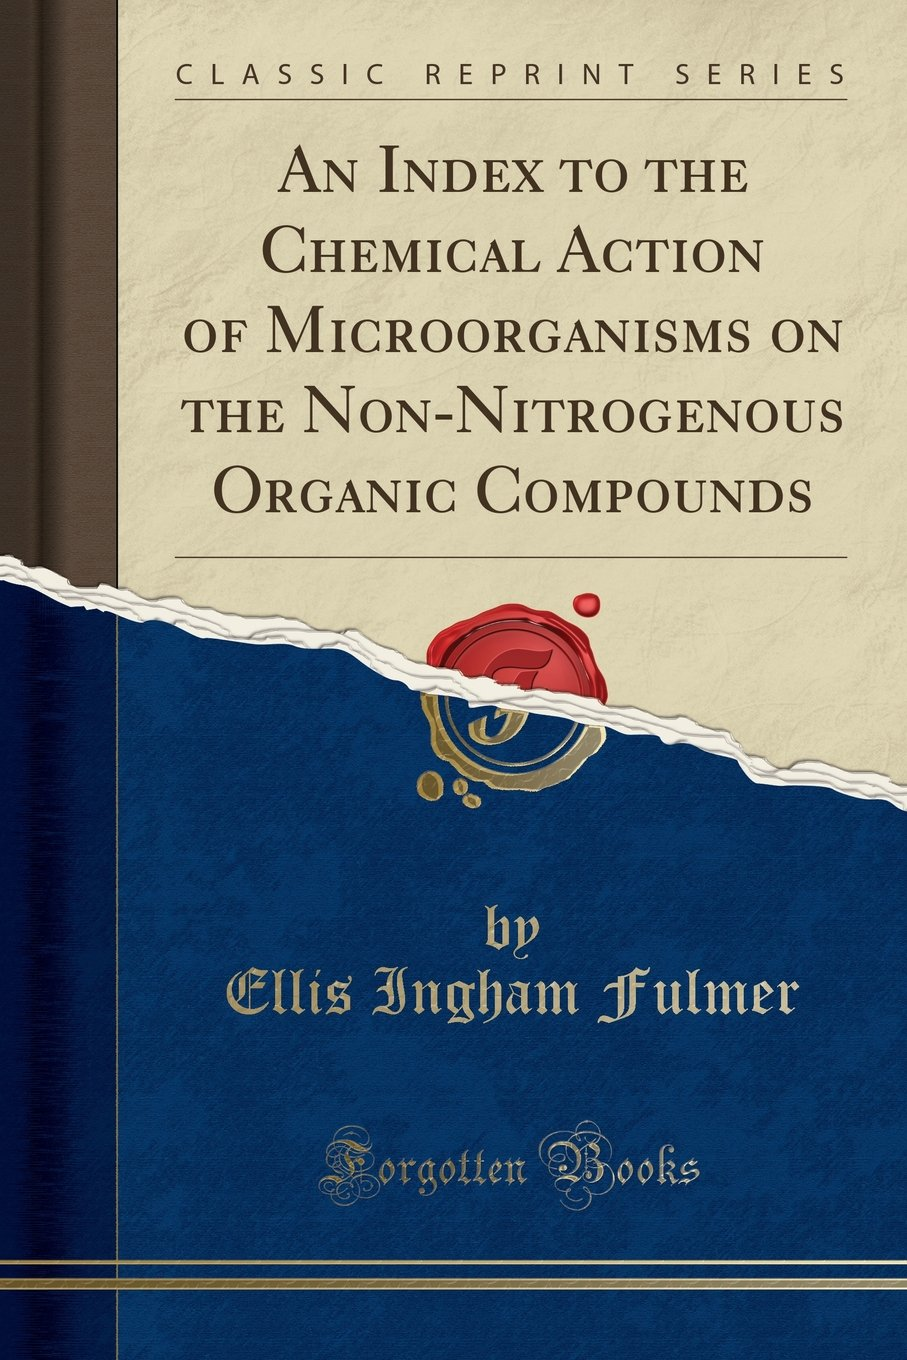 Read Online An Index to the Chemical Action of Microorganisms on the Non-Nitrogenous Organic Compounds (Classic Reprint) PDF